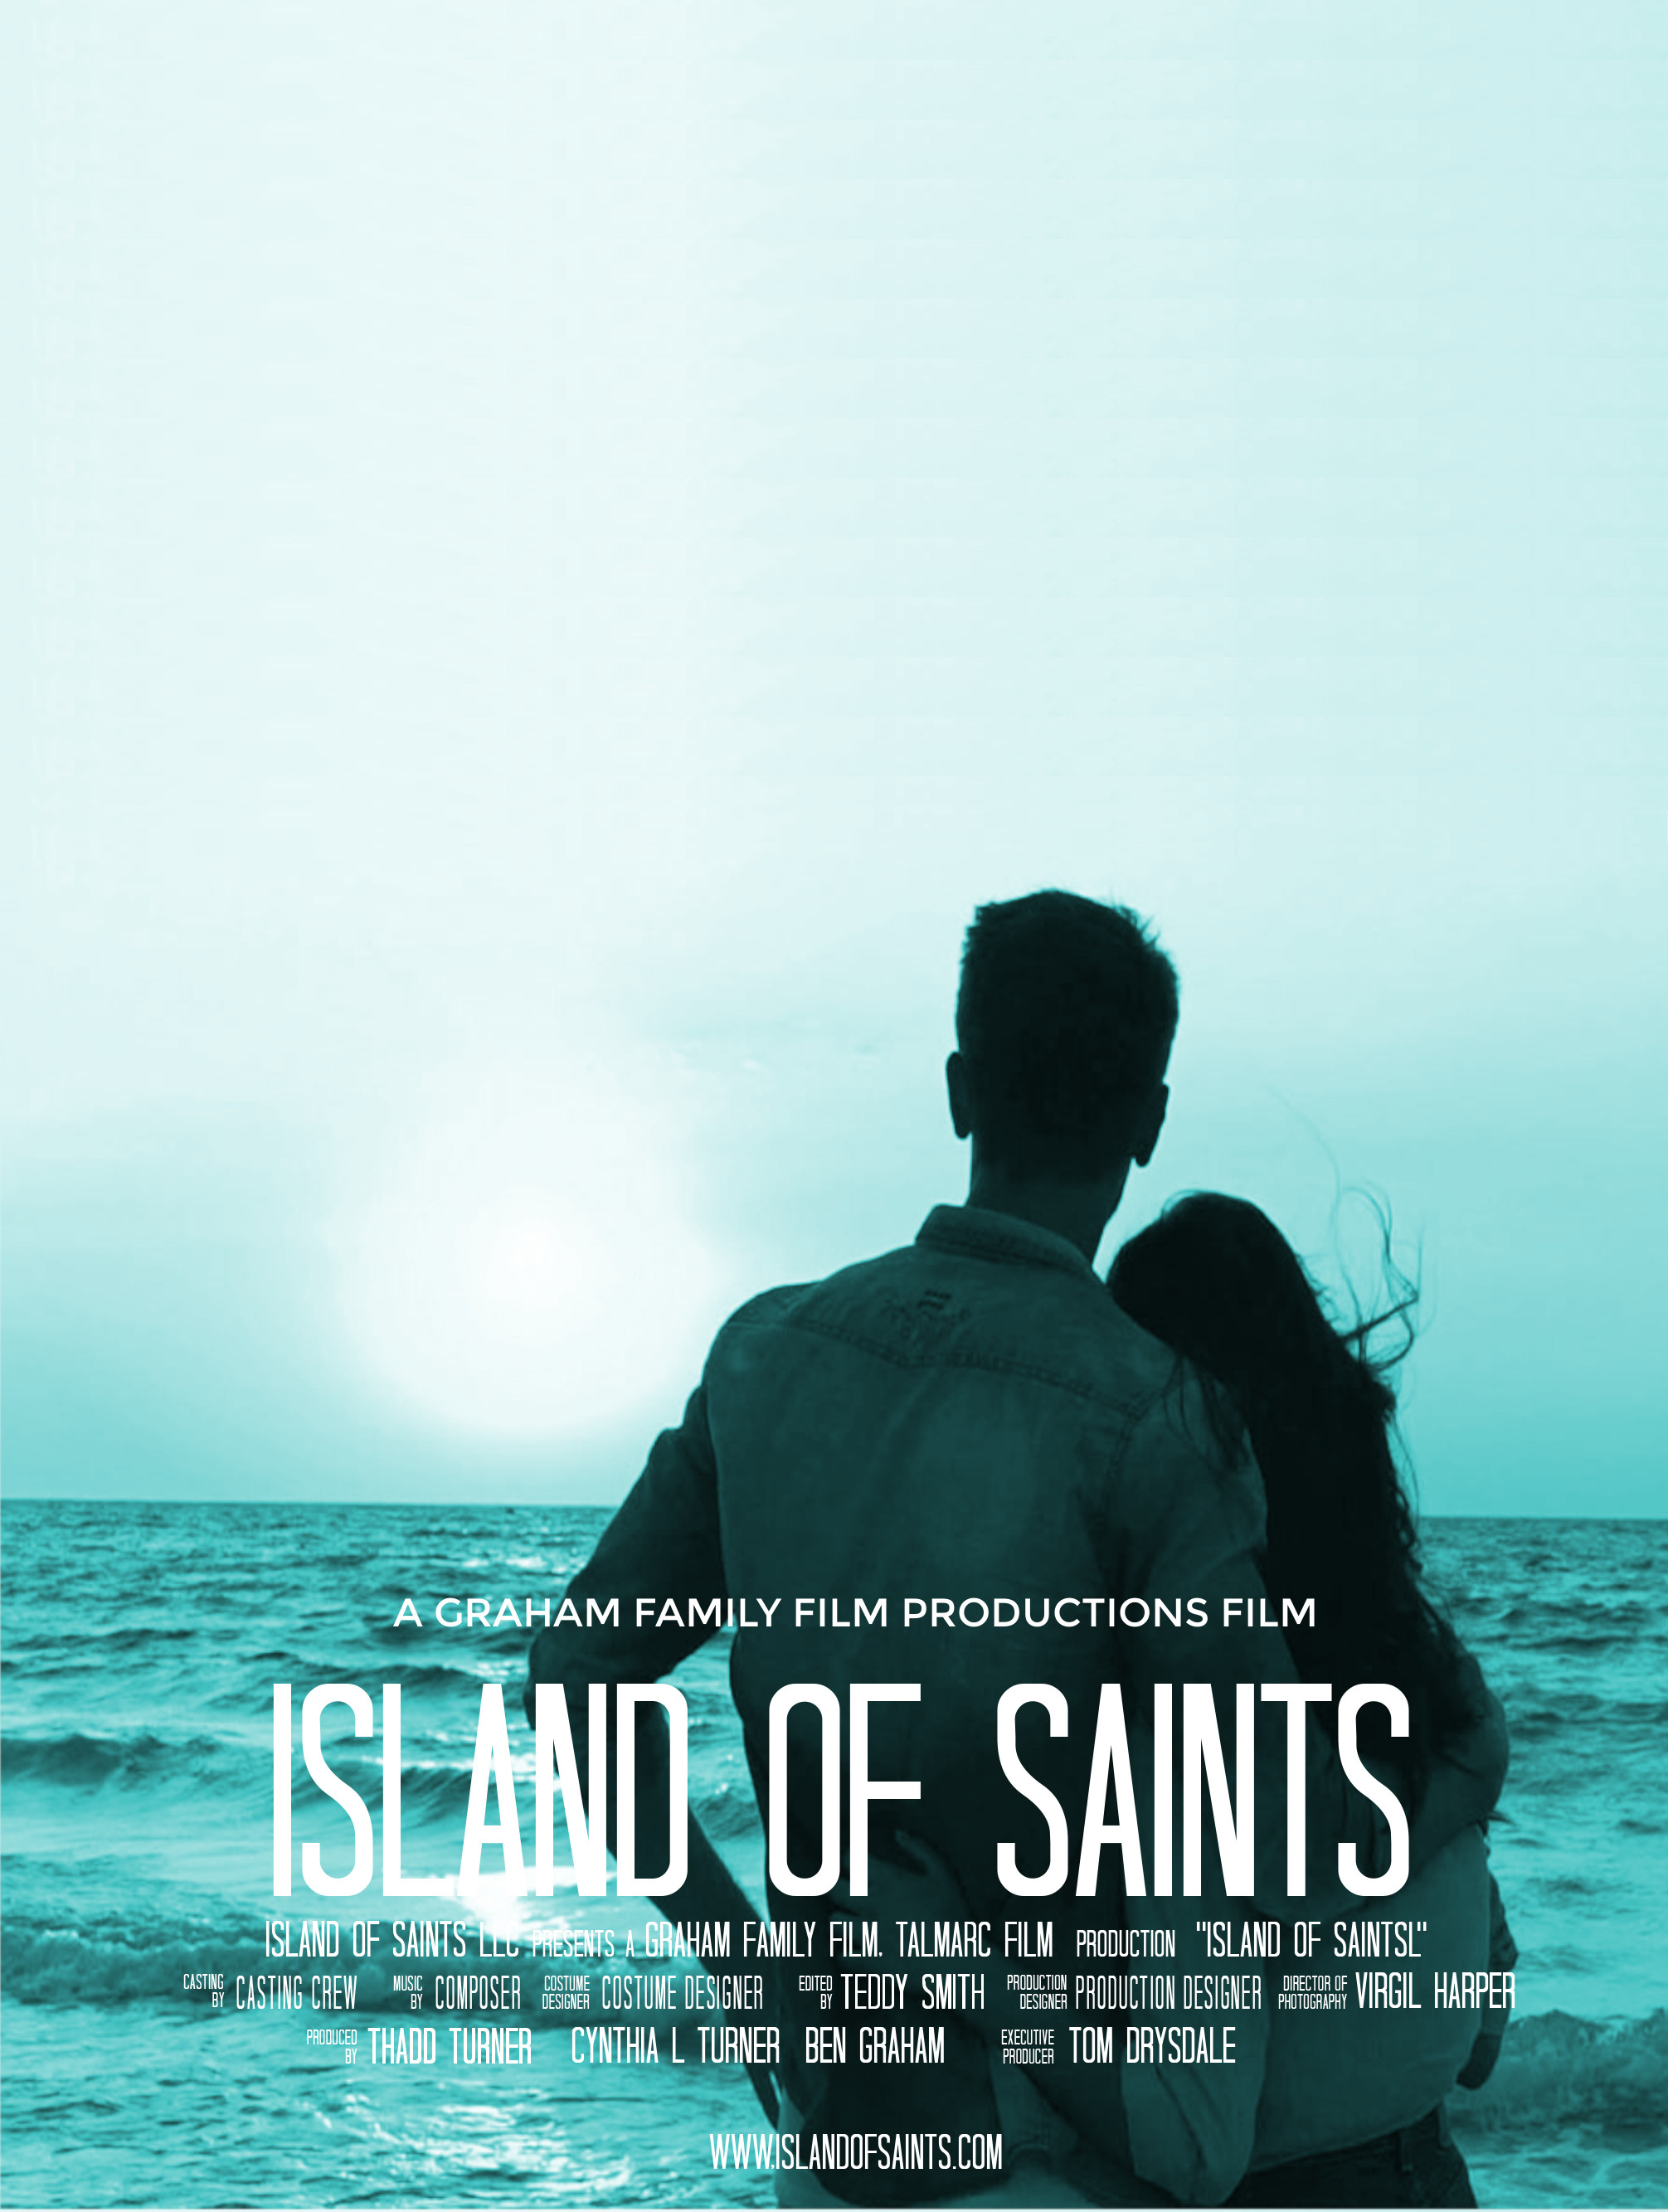 ISLANDS OF SAINTS Movie Poster Template.